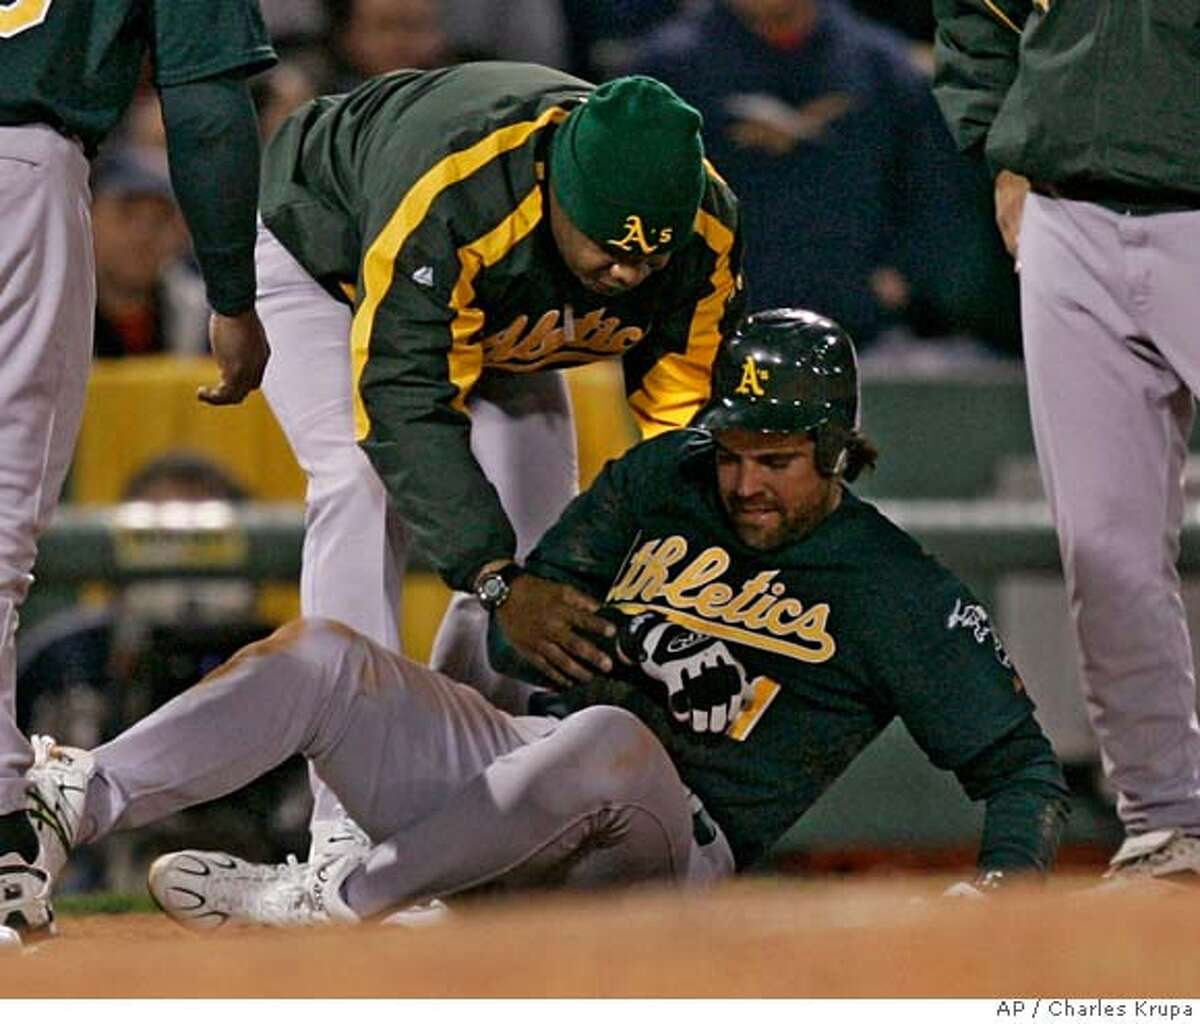 Oakland Athletics' Mike Piazza is helped up after Boston Red Sox third baseman Mike Lowell fell on him in the sixth inning during their baseball game in Boston Wednesday, May 2, 2007.(AP Photo/Charles Krupa) Ran on: 05-03-2007 Mark Ellis throw was too late to get Jason Varitek in the second inning. Ran on: 05-03-2007 Mike Piazza on his sprained AC joint: Its the second-worst thing you can do to your shoulder. Ran on: 05-03-2007 Mike Piazza on his sprained AC joint: Its the second-worst thing you can do to your shoulder.